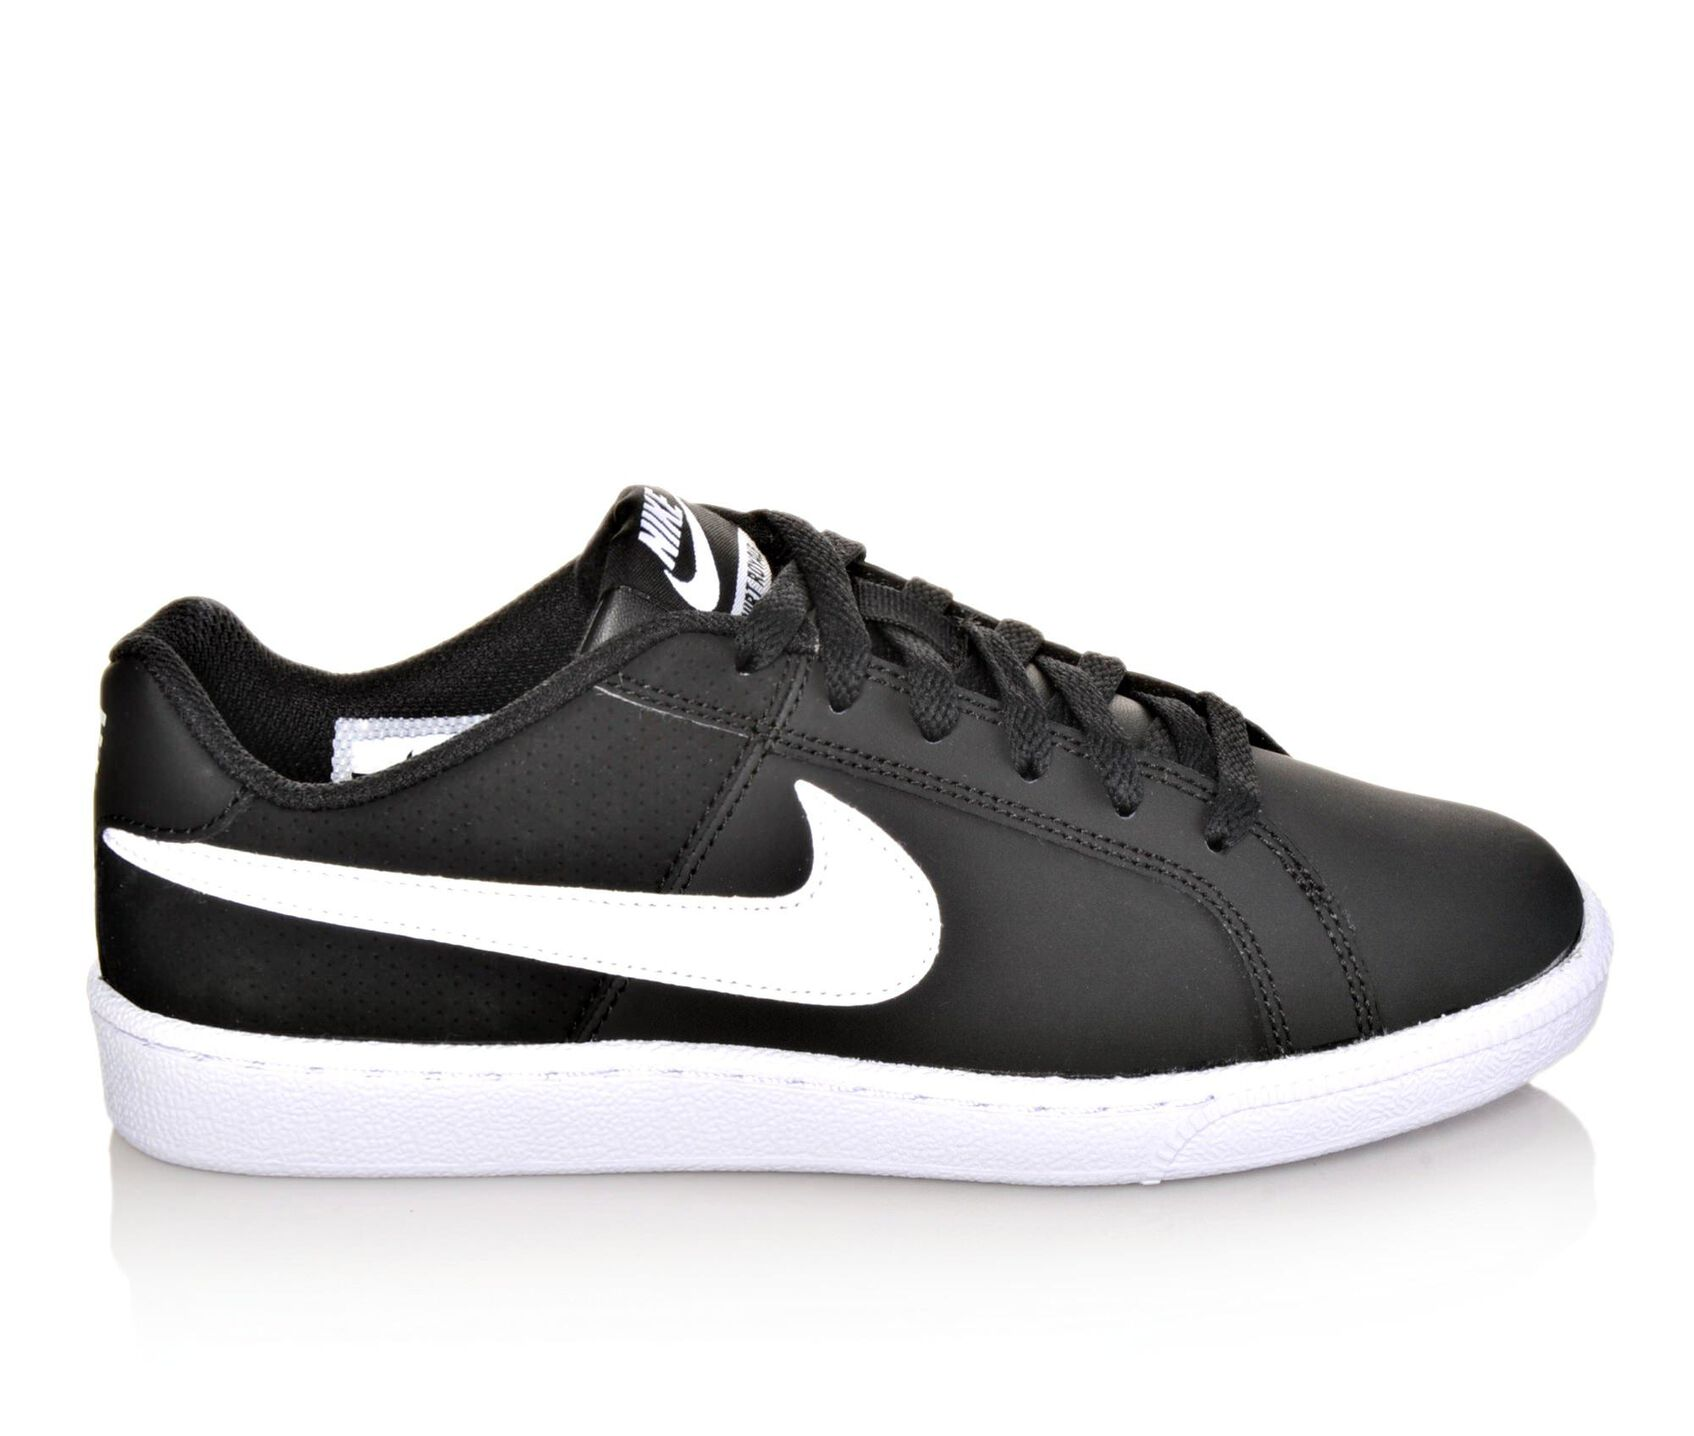 0b433acf0581 Images. Women  39 s Nike Court Royale Sneakers